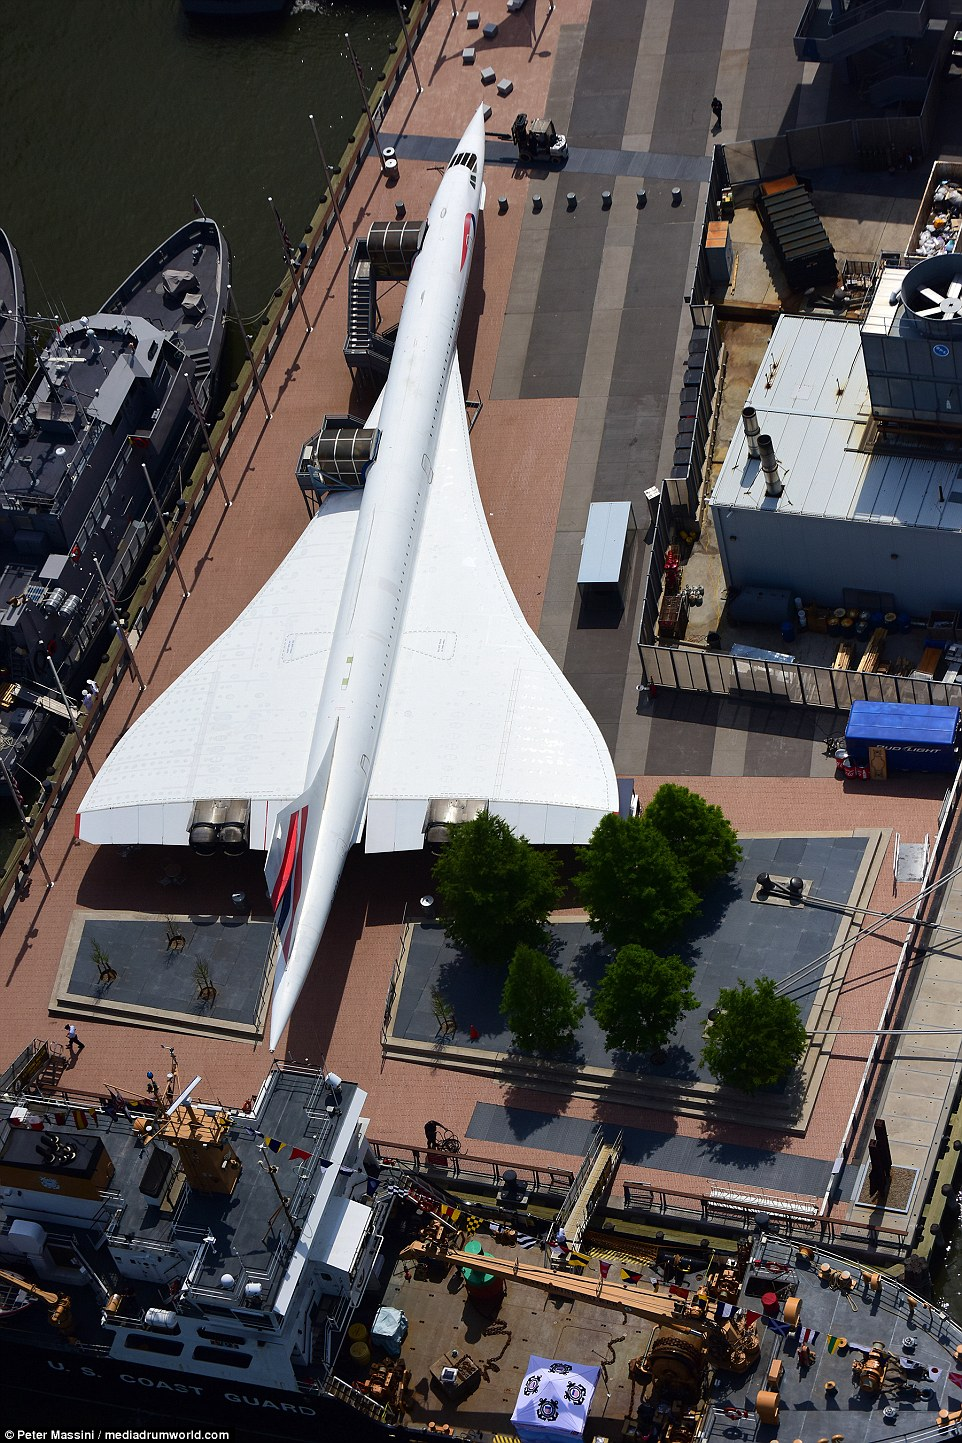 Attack helicopters, vintage aircraft and even Concorde (pictured) are on display in New York as part of the 28th annual Fleet Week